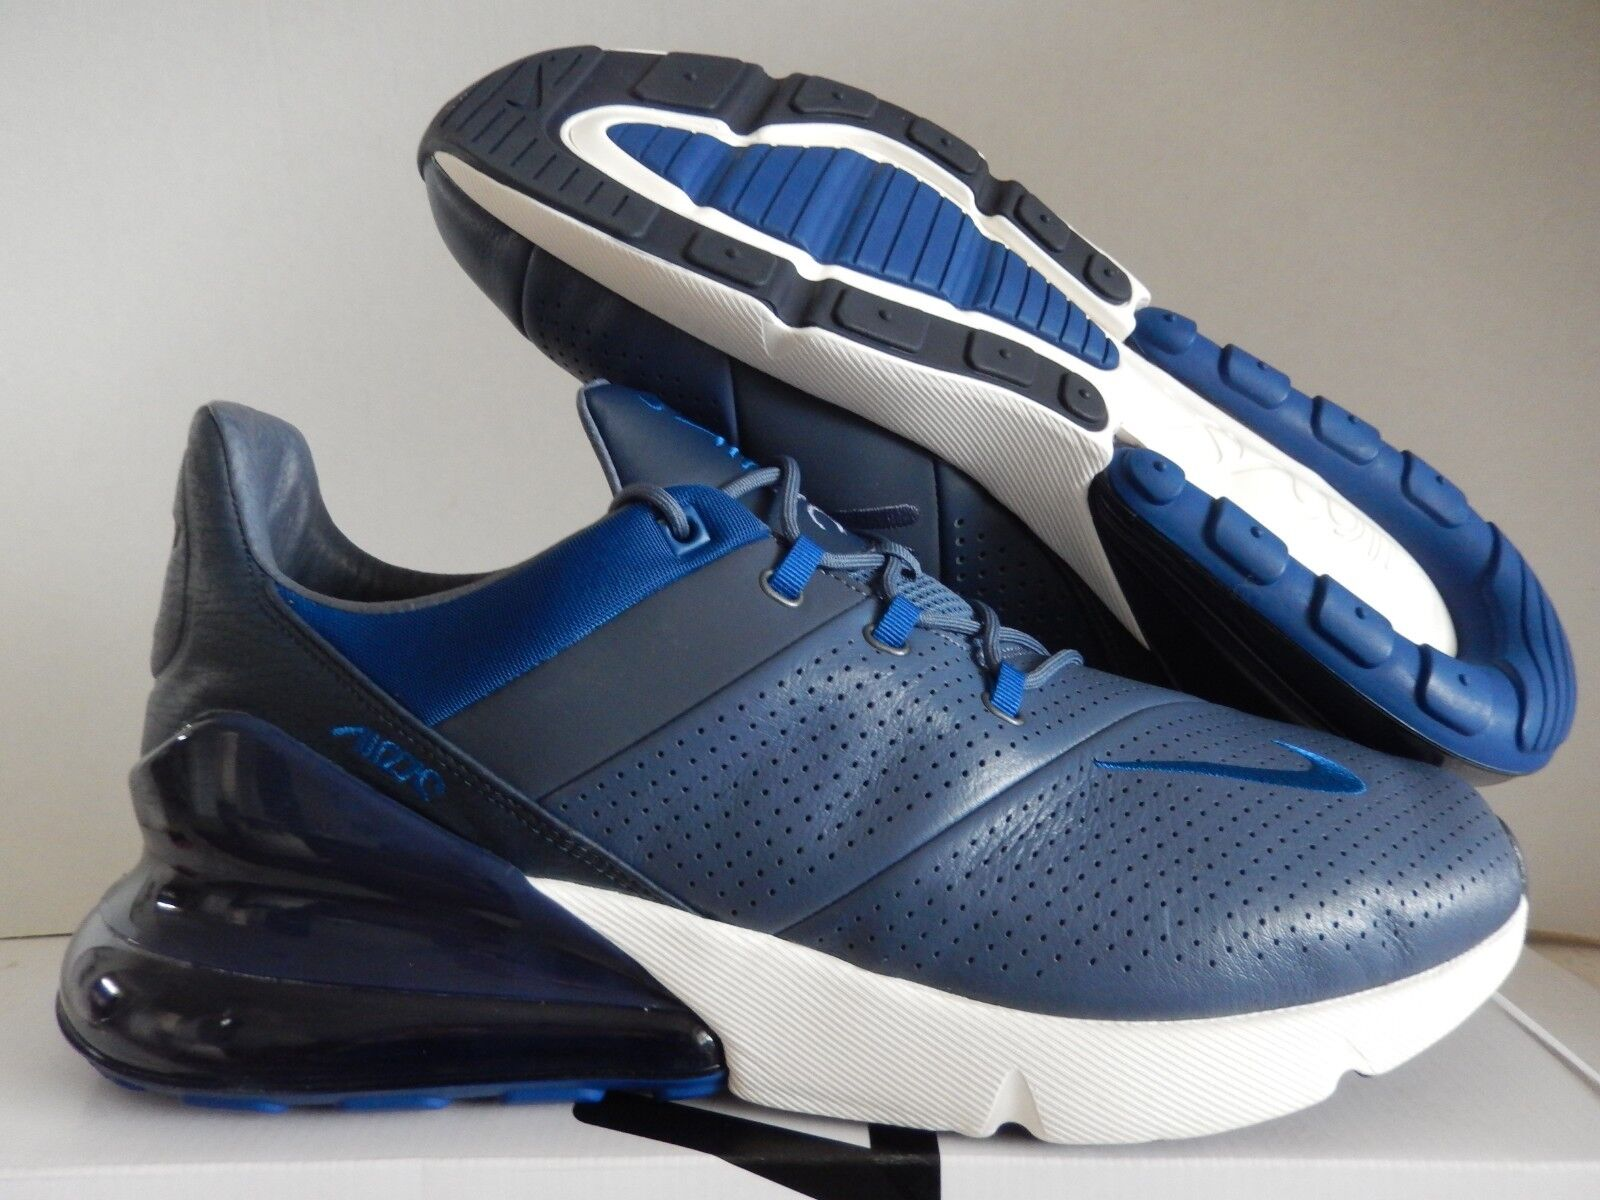 new concept b0e12 18b50 NIKE AIR MAX 270 PREMIUM DIFFUSED blueE-GYM blueE SZ 14 14 14  AO8283